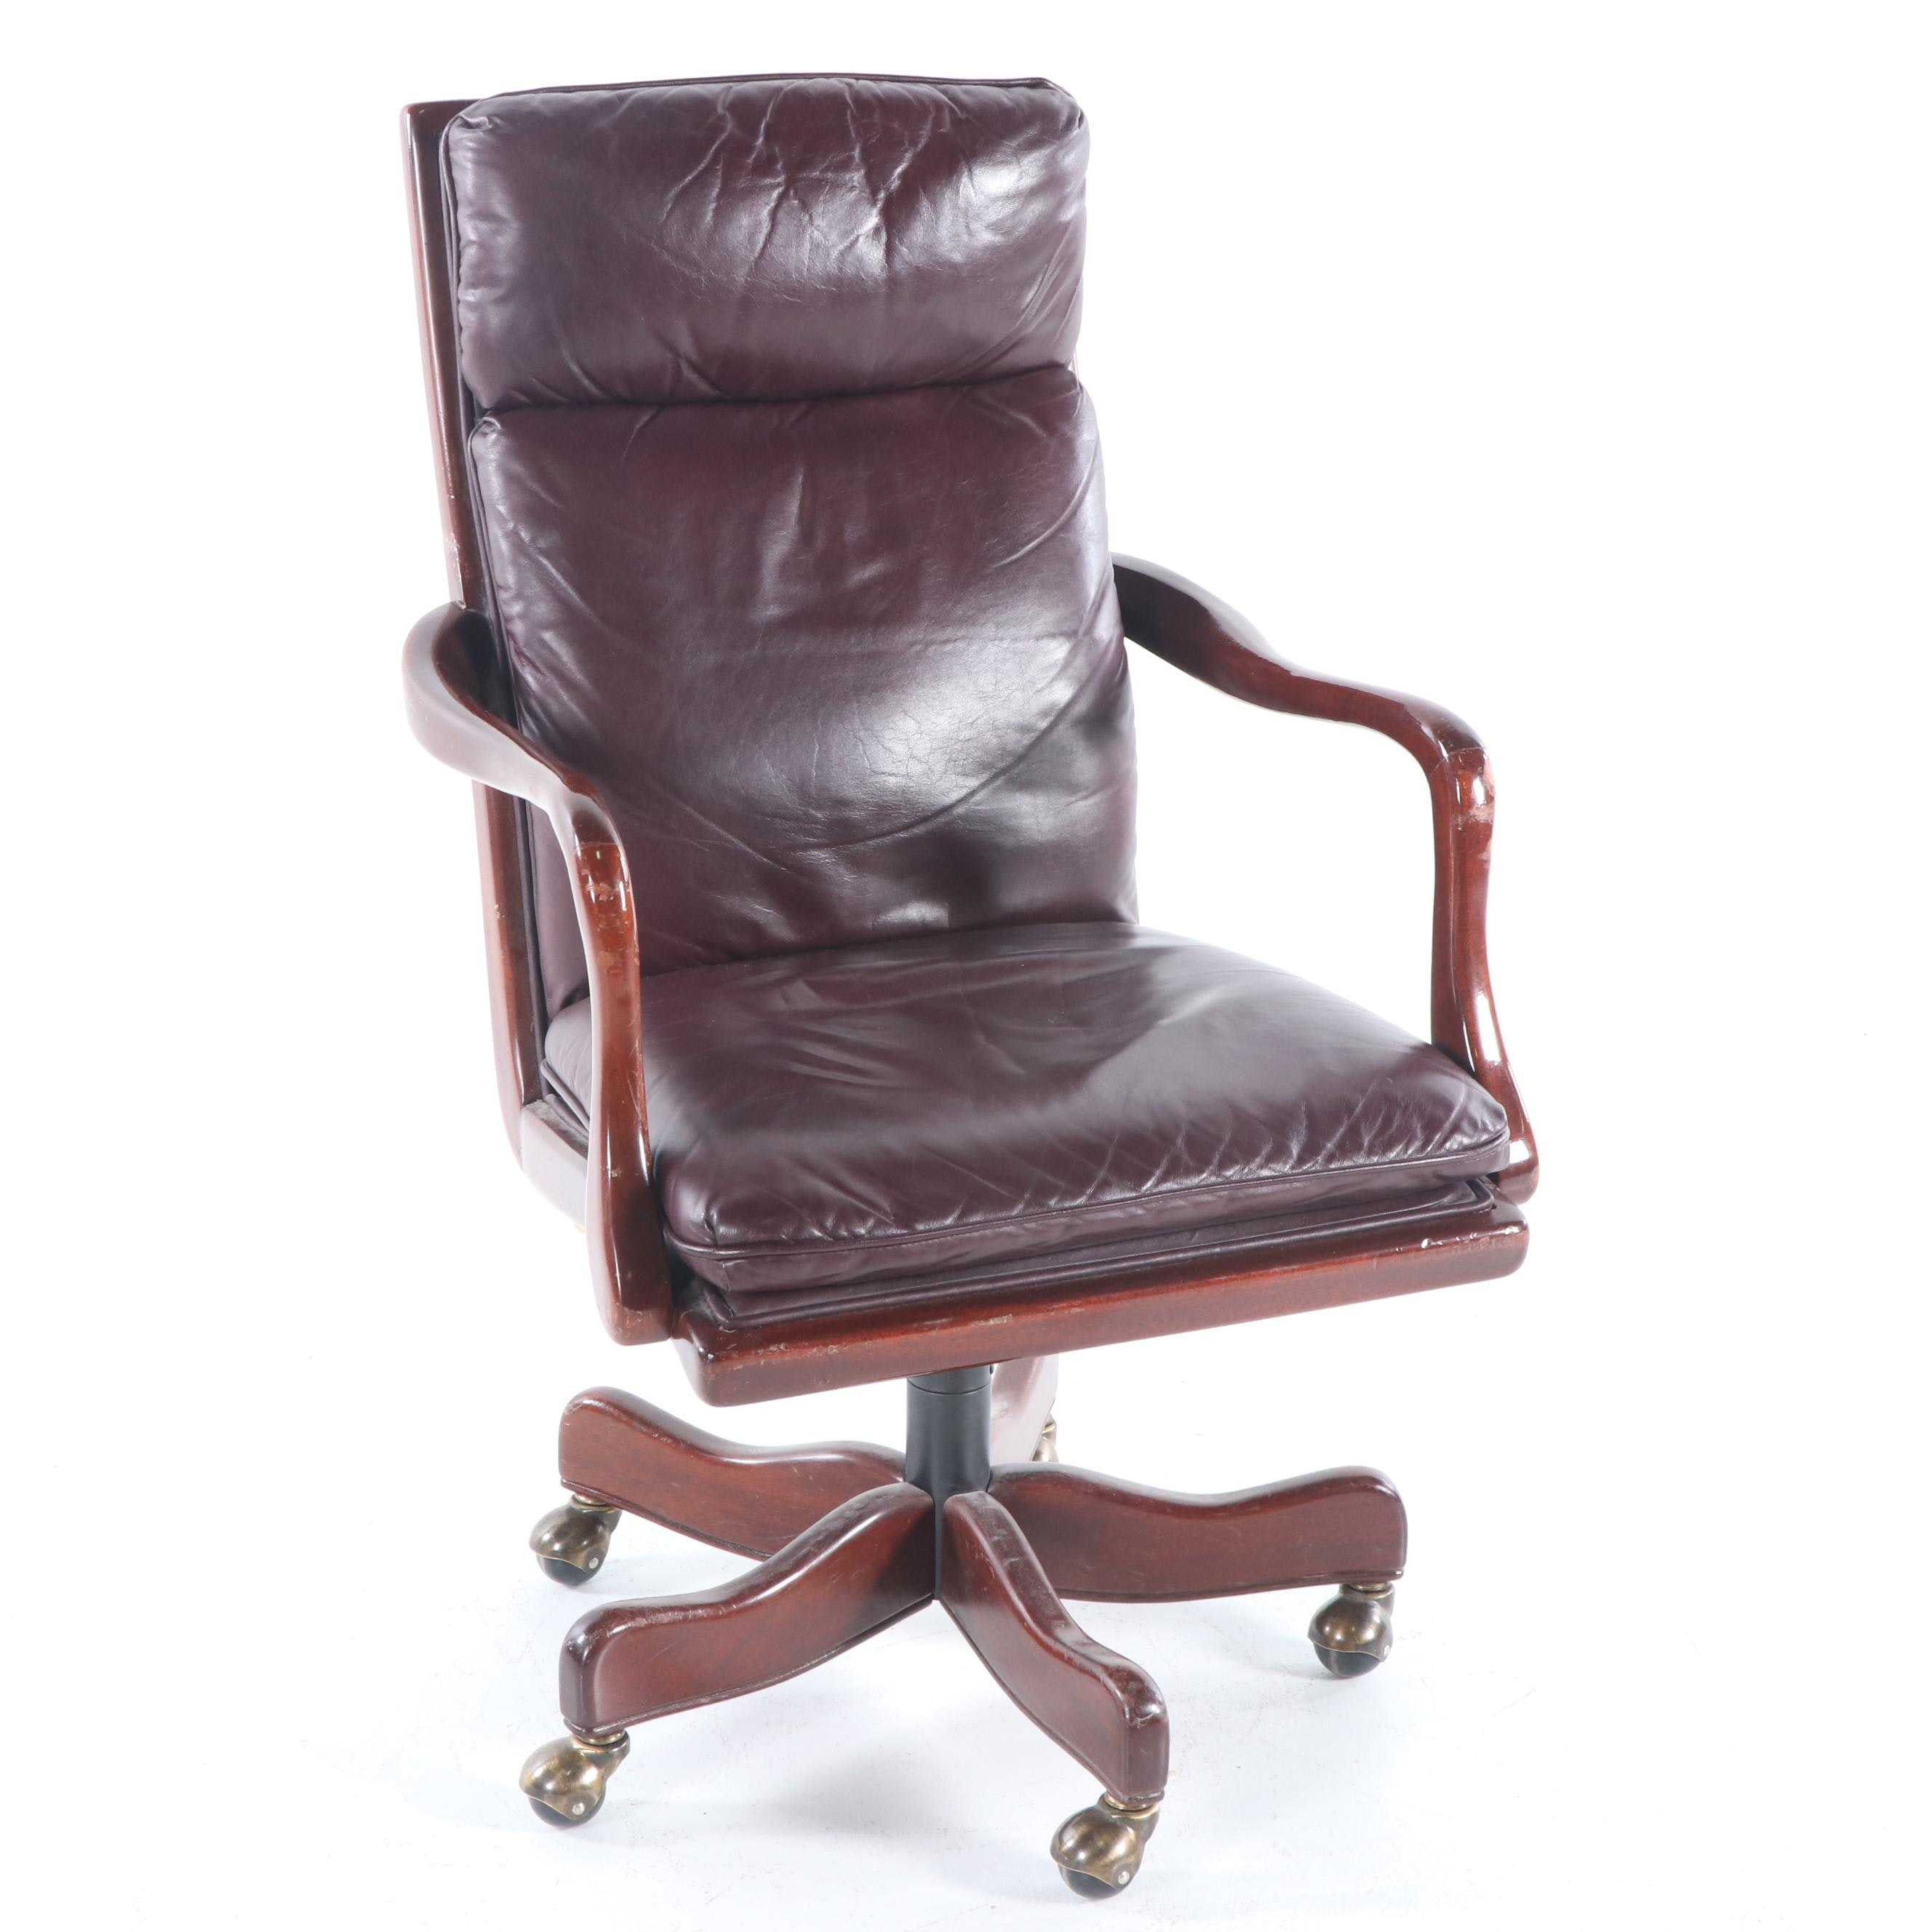 Leather Office Chair on Casters, Late 20th Century